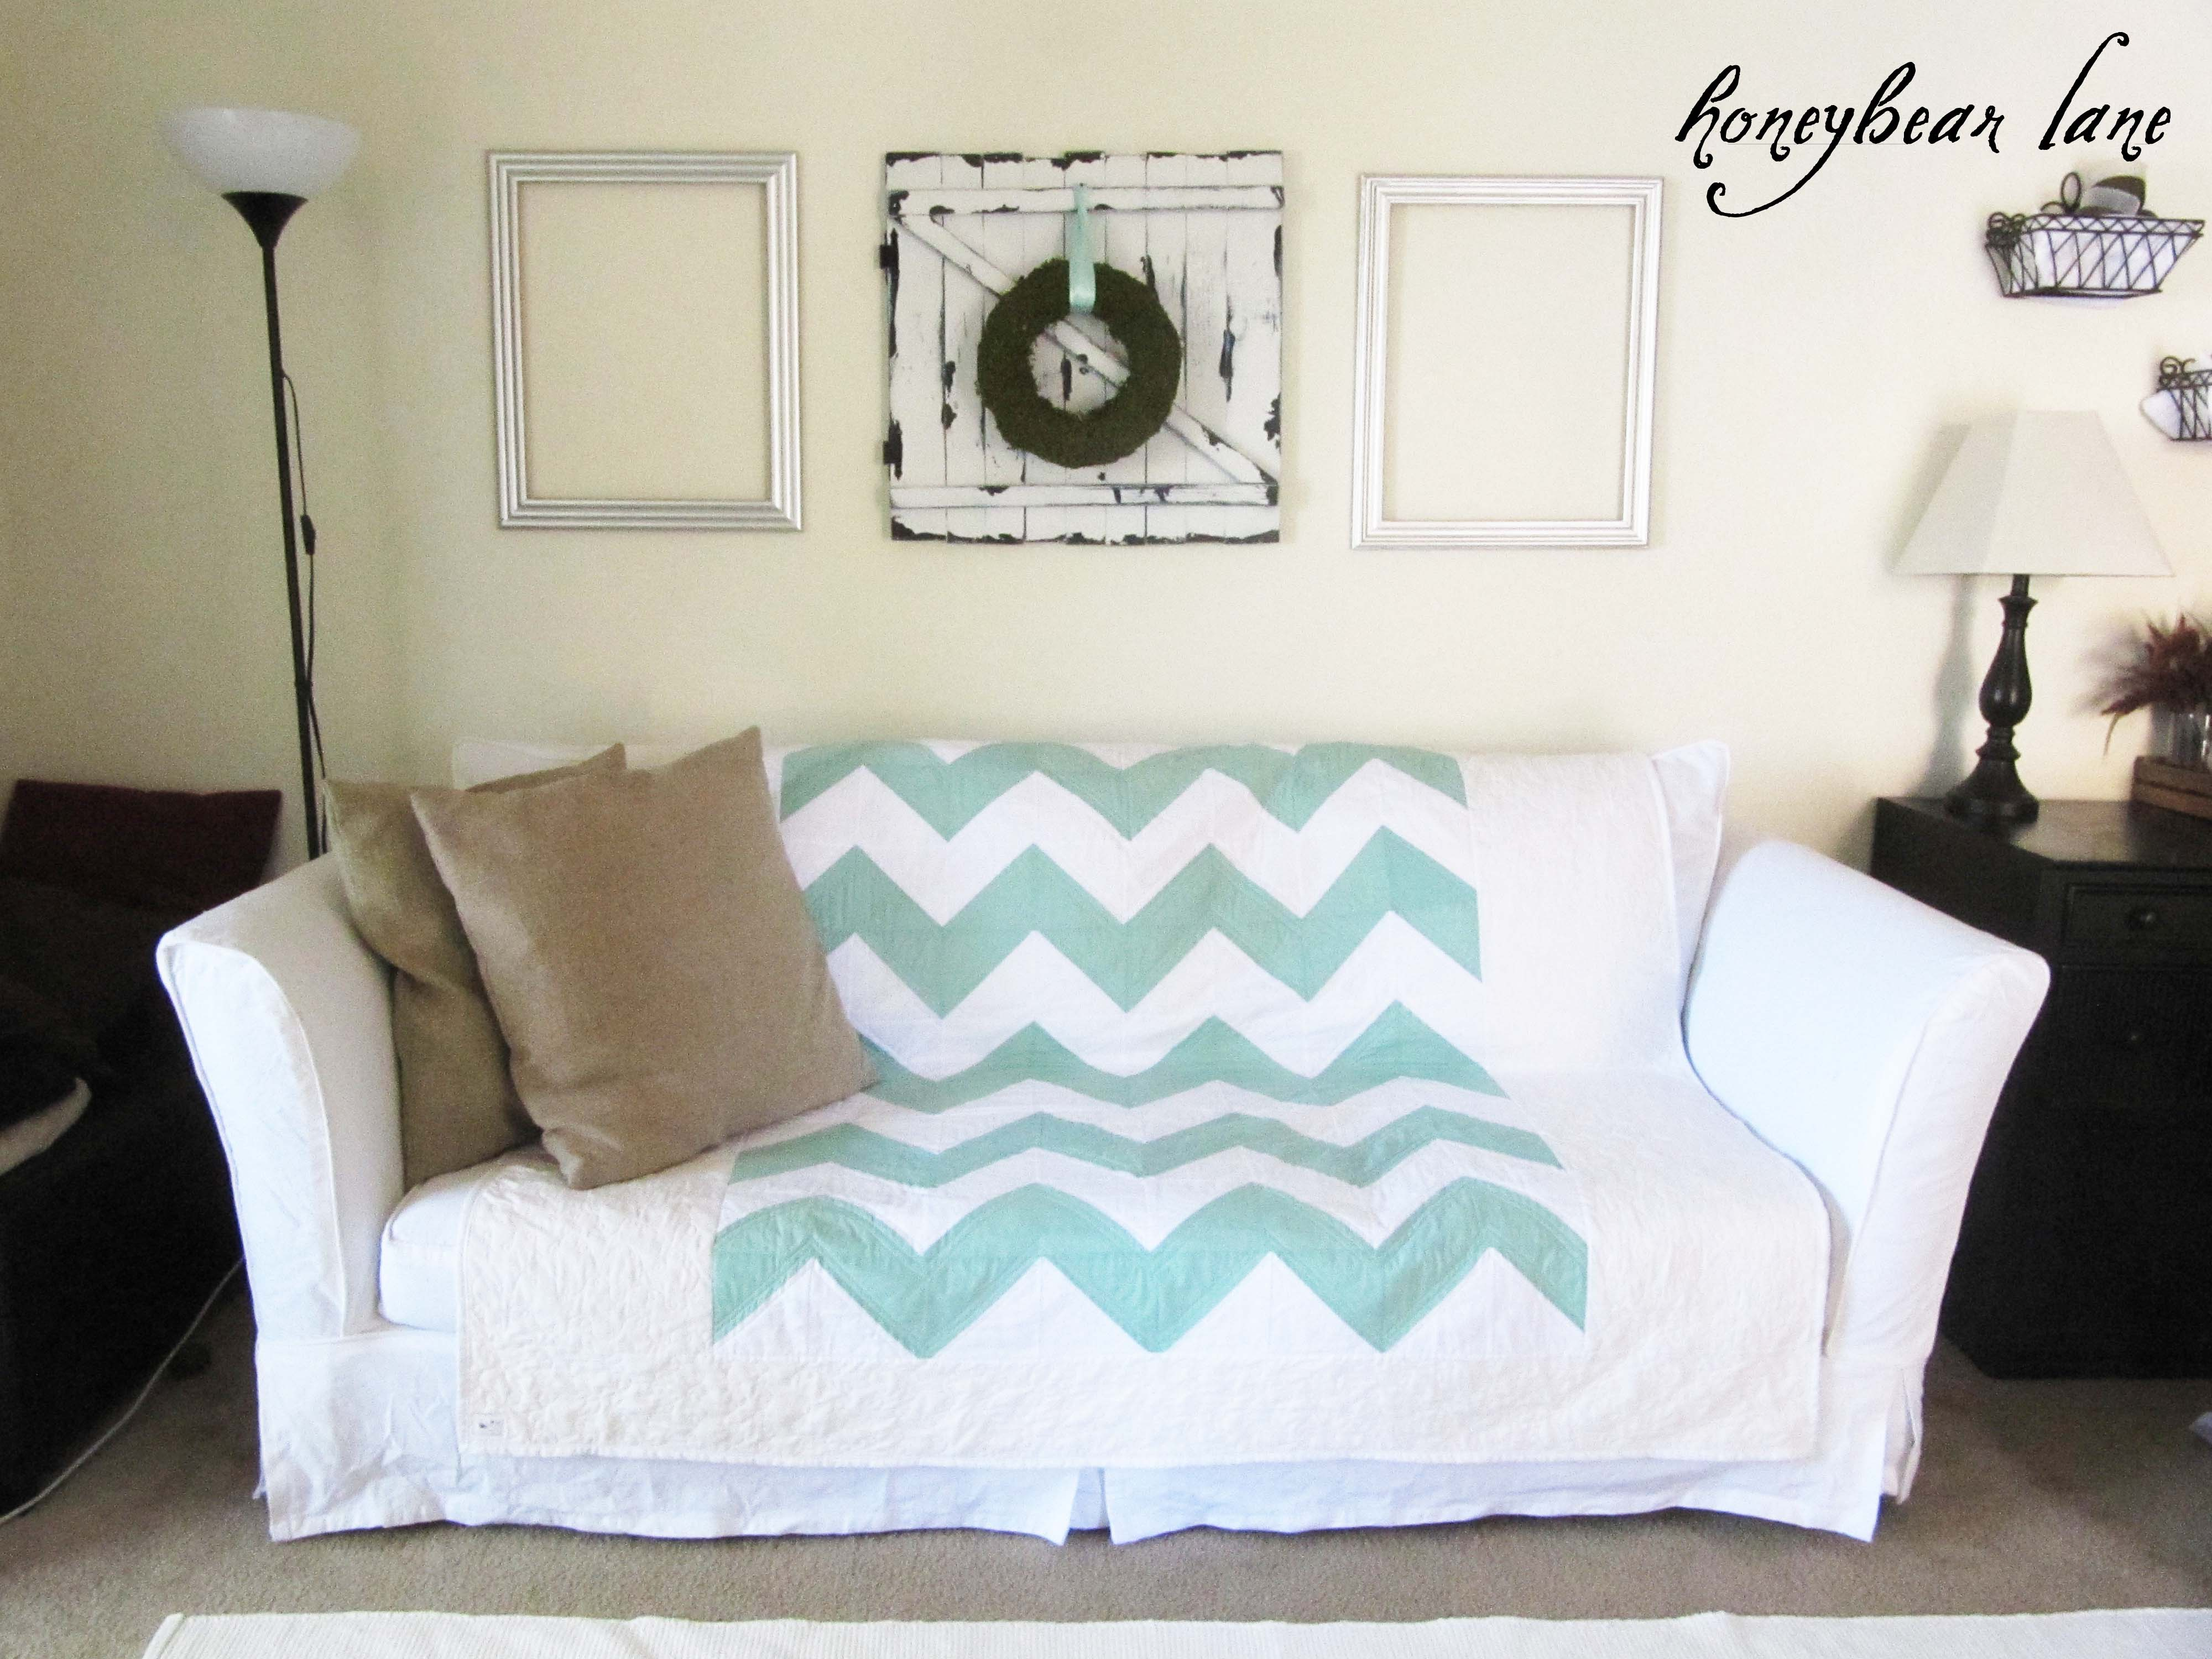 How to Make a Slipcover Part 2 Slipcover Reveal Honeybear Lane